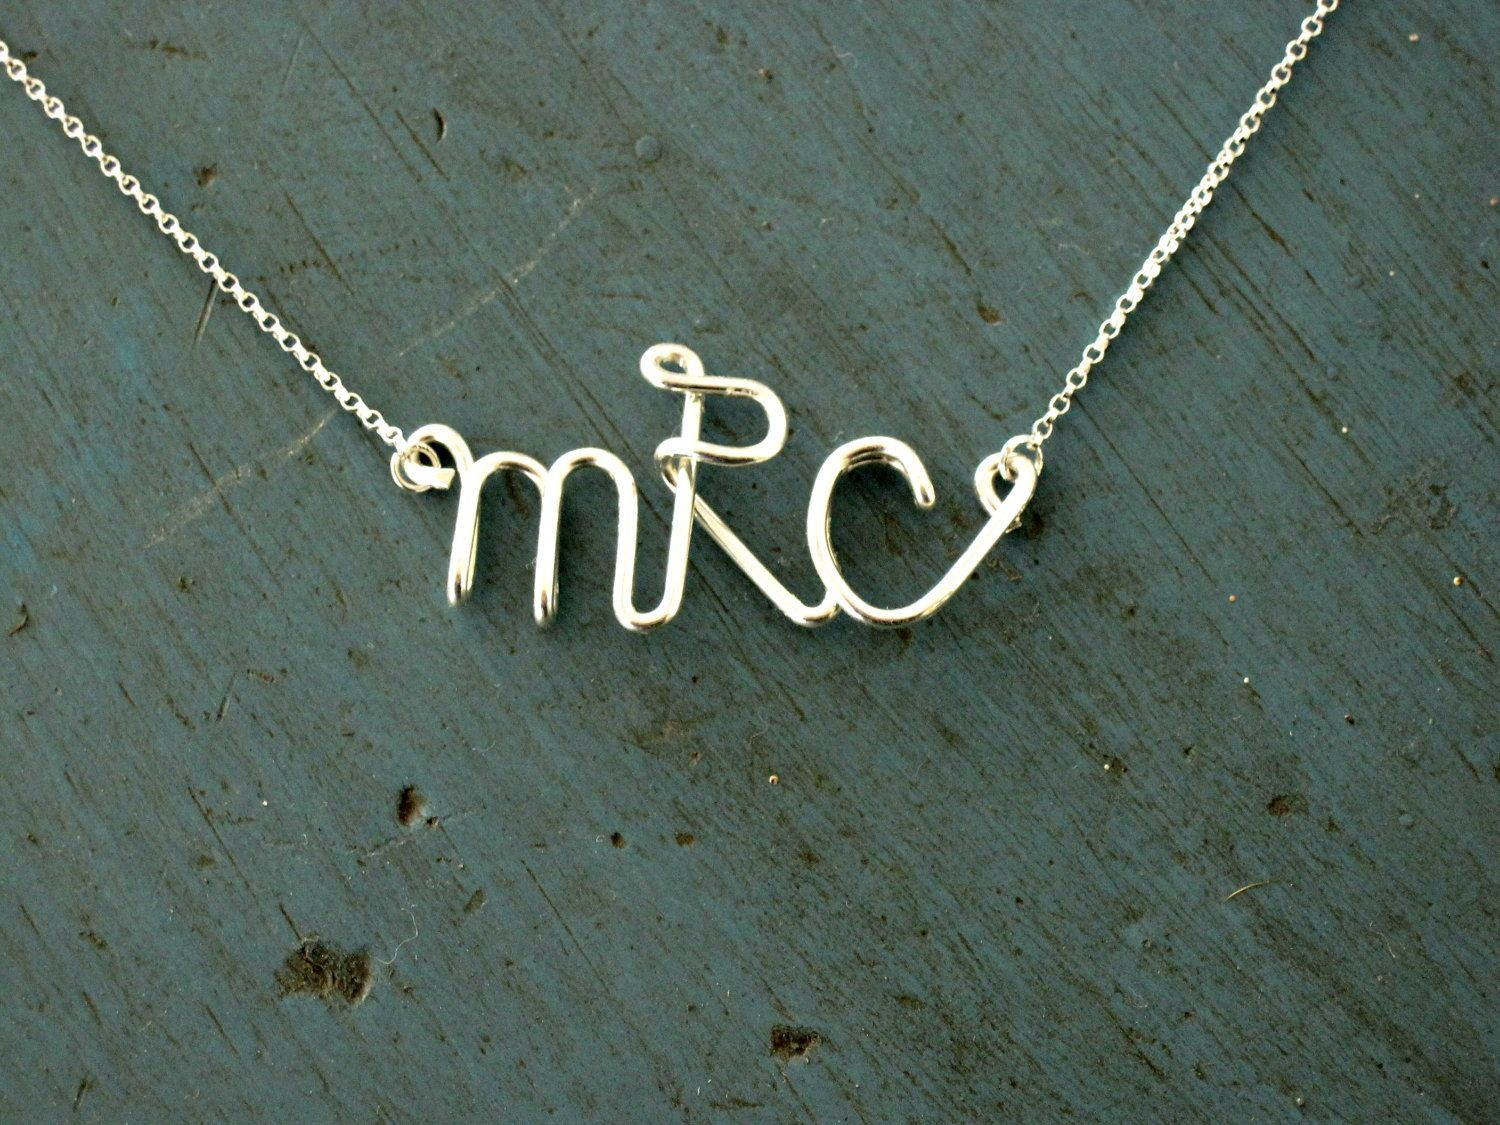 Monogram Necklace Sterling Silver Initial Necklace Personalized Bridesmaid jewelry Graduation gift. $37.00, via Etsy.